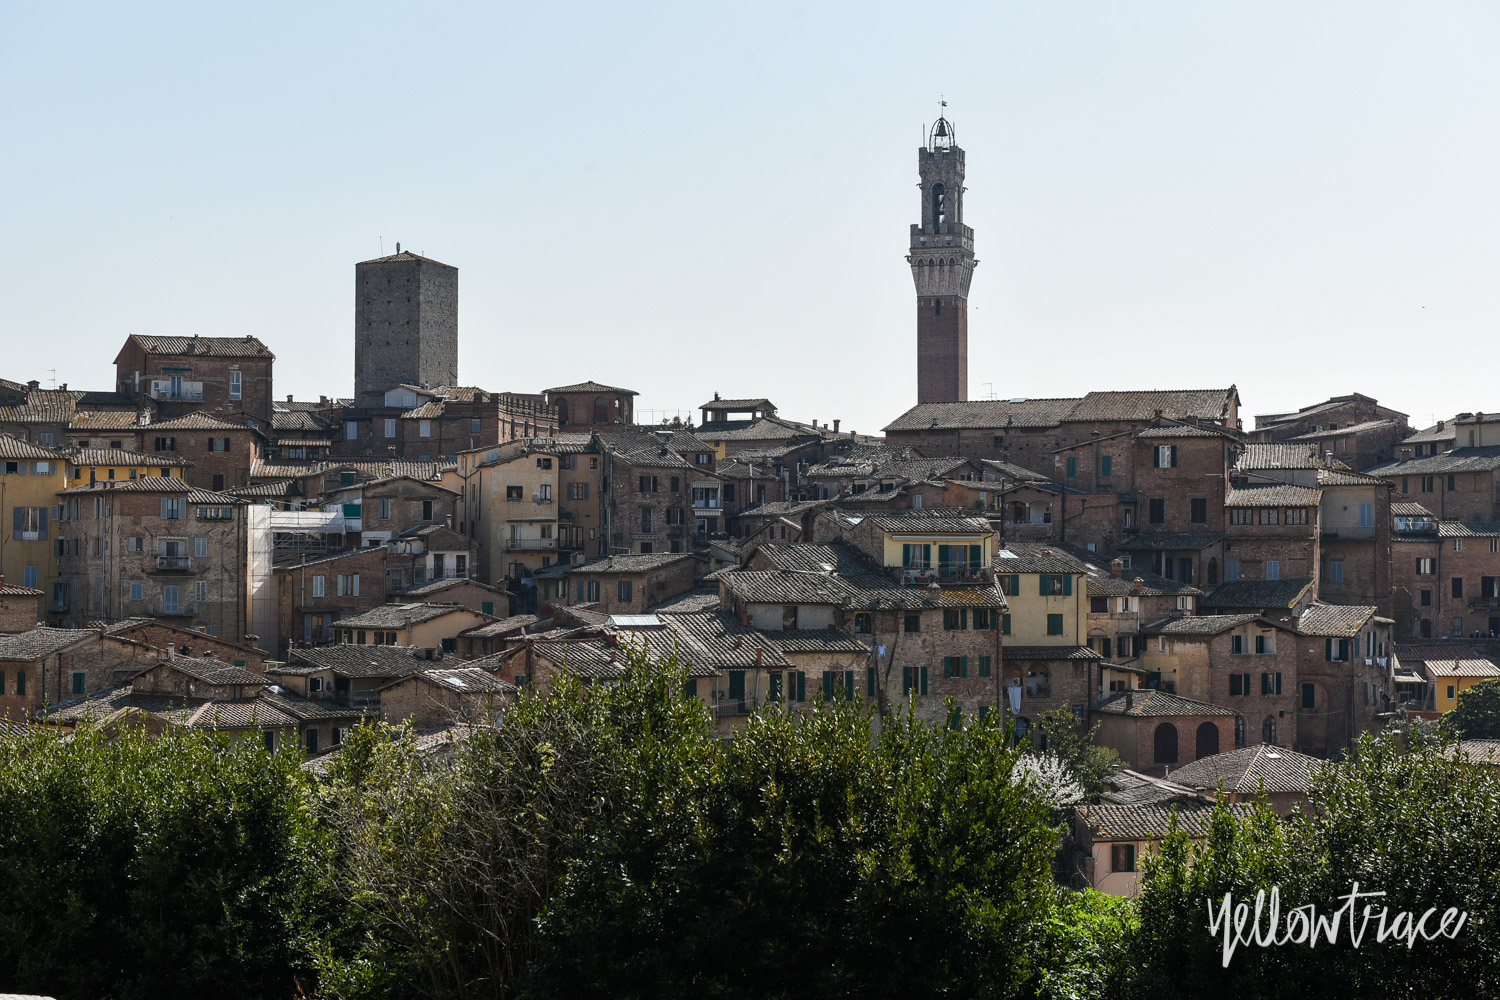 #YellowtraceTravels: Postcards From Siena. Photo by Nick Hughes | Yellowtrace